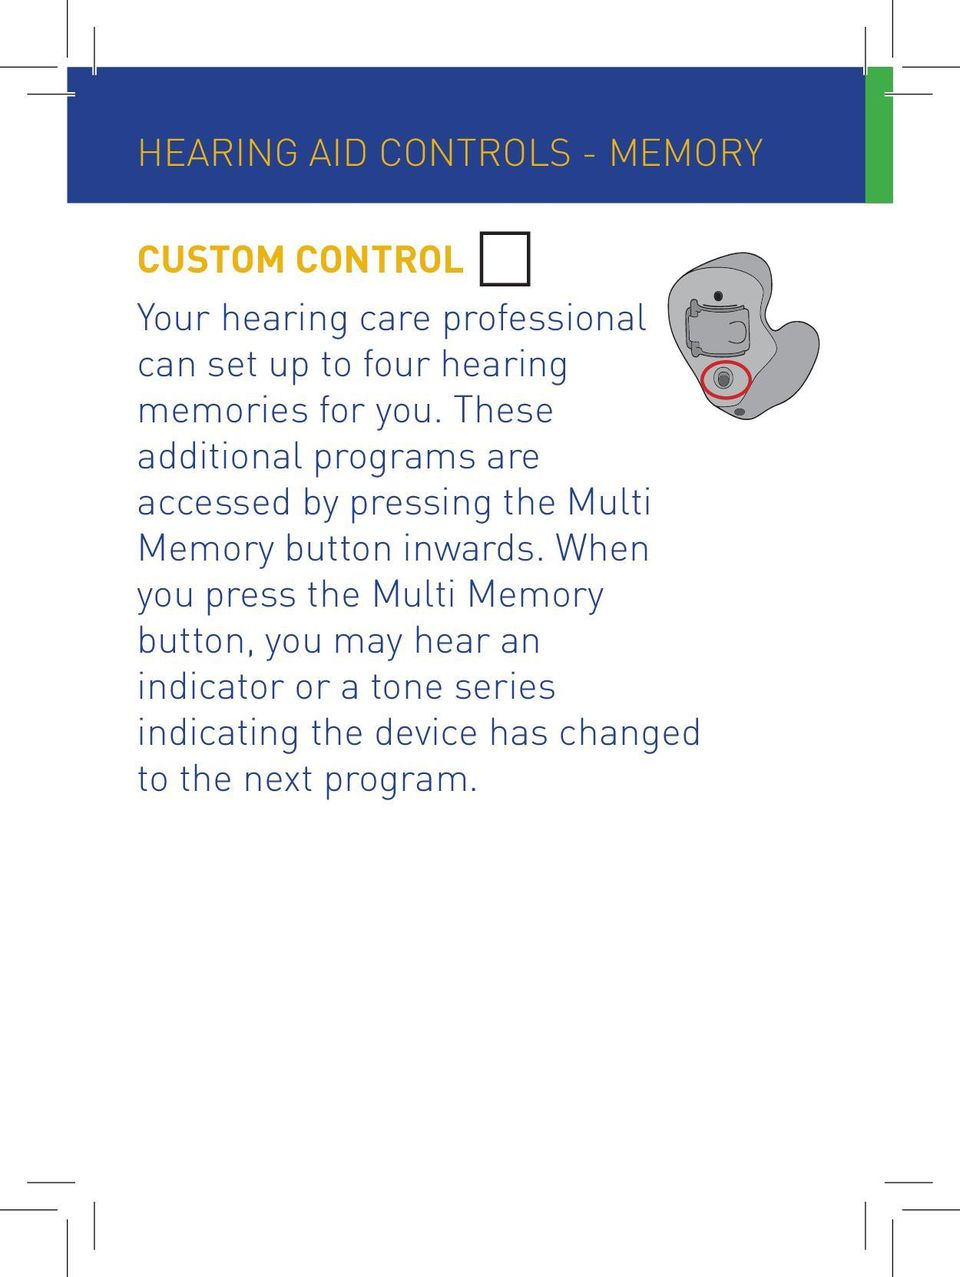 These additional programs are accessed by pressing the Multi Memory button inwards.